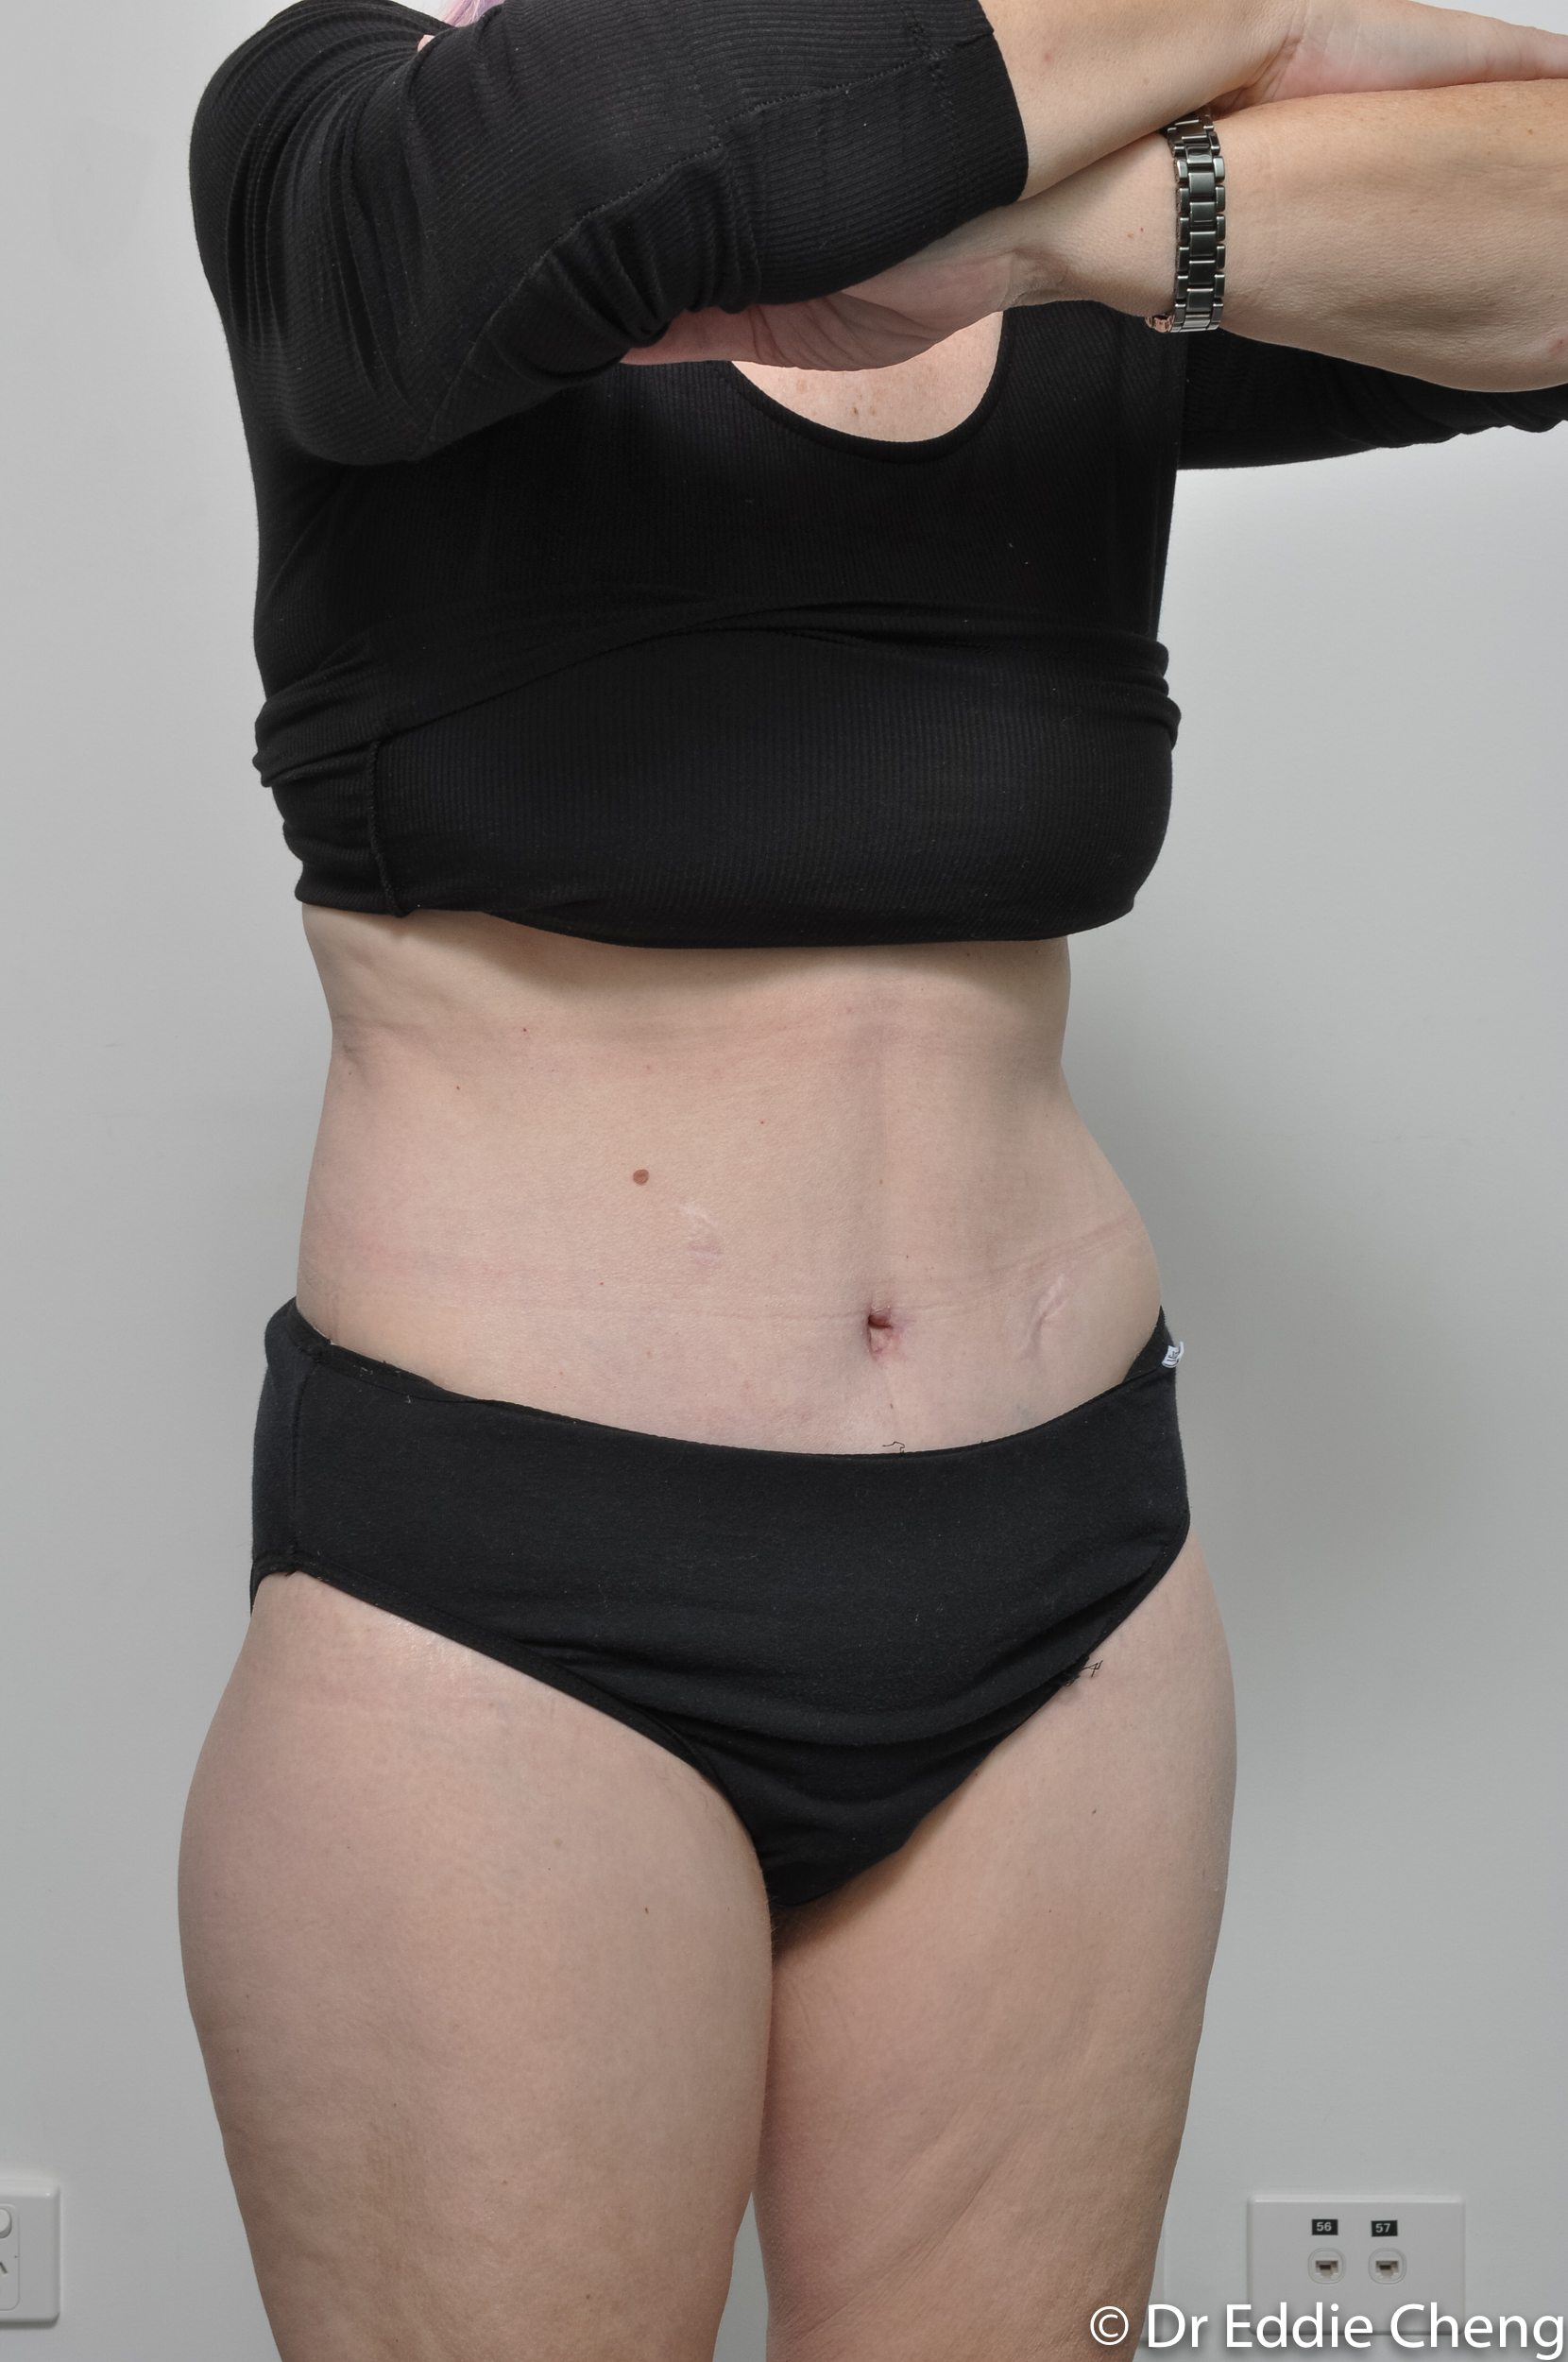 body lift brisbane dr eddie cheng weightloss pre and post op -12